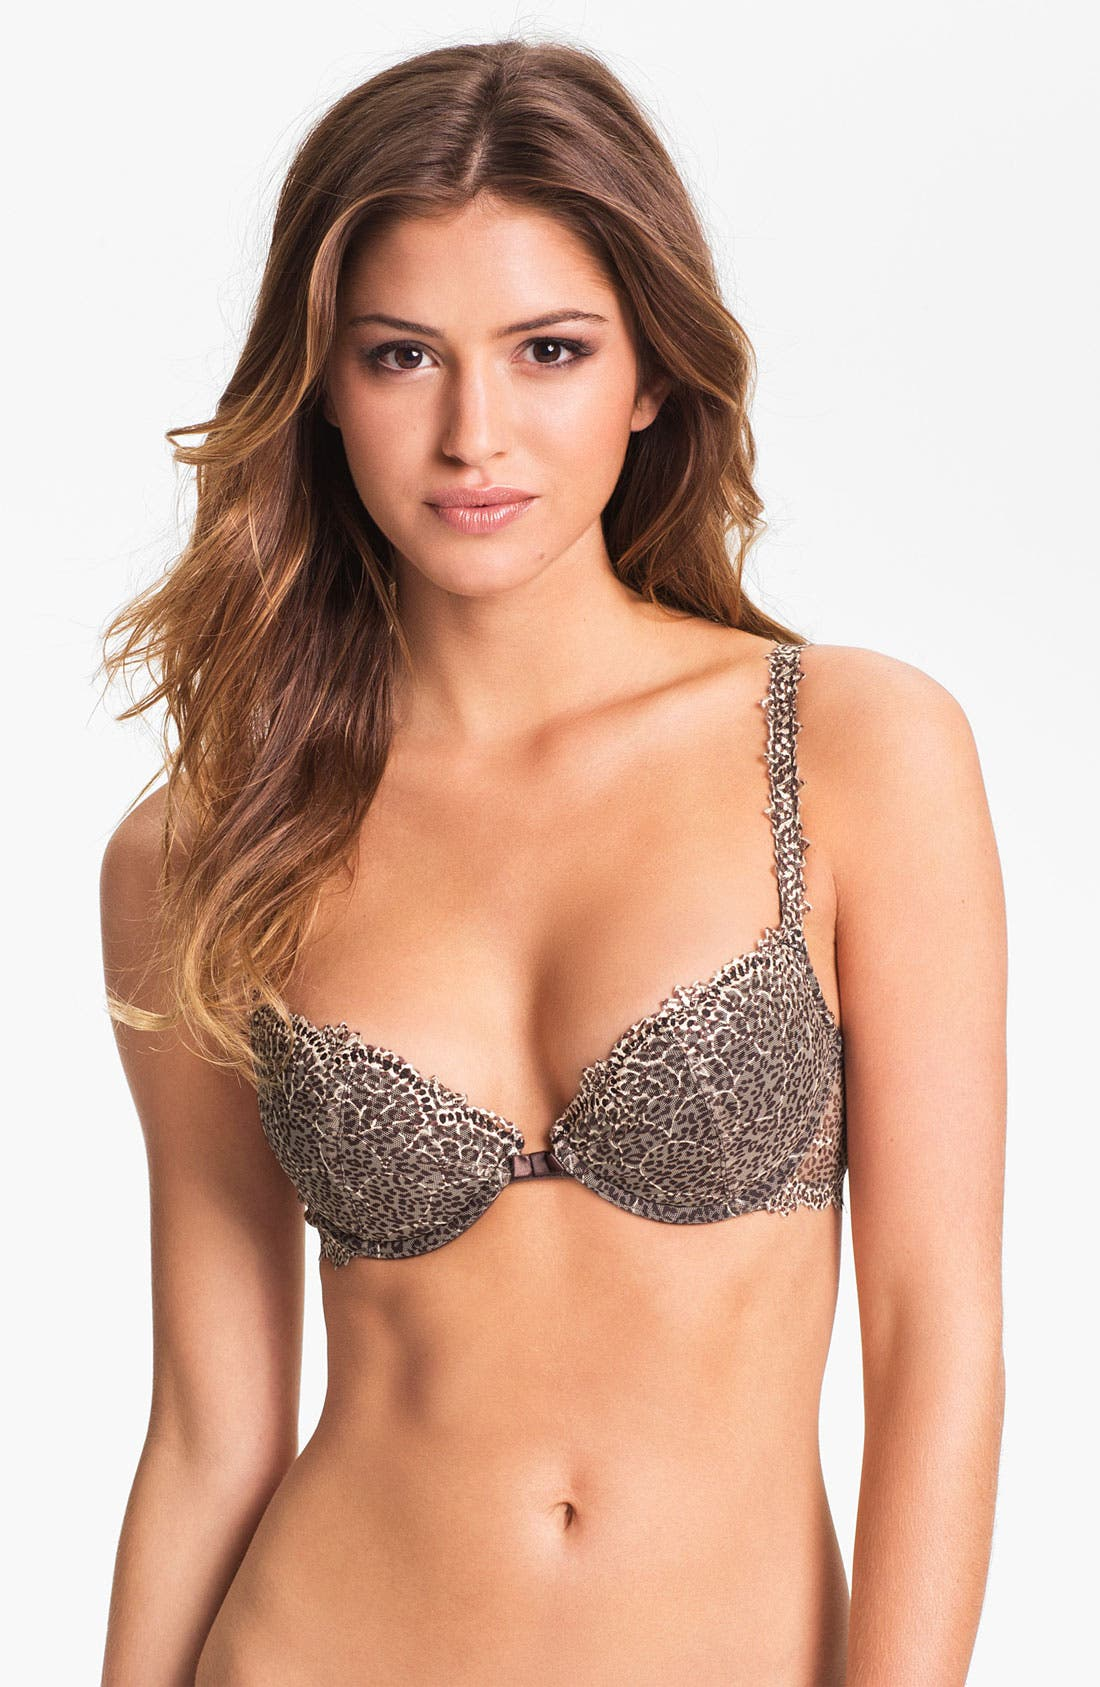 Alternate Image 1 Selected - Chantelle Intimates 'Icone' Underwire Push-Up Bra